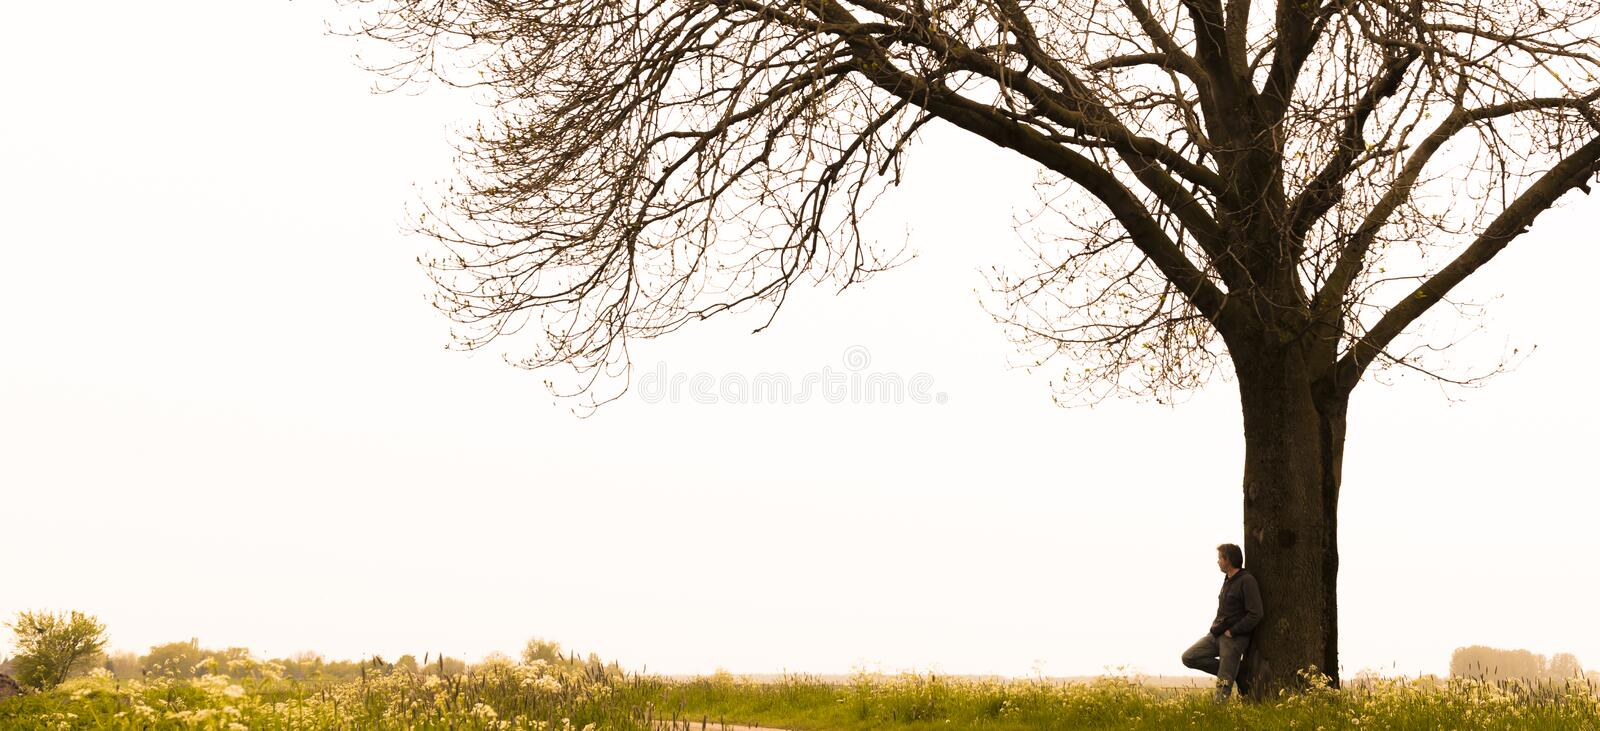 Man standing against a tree stock image